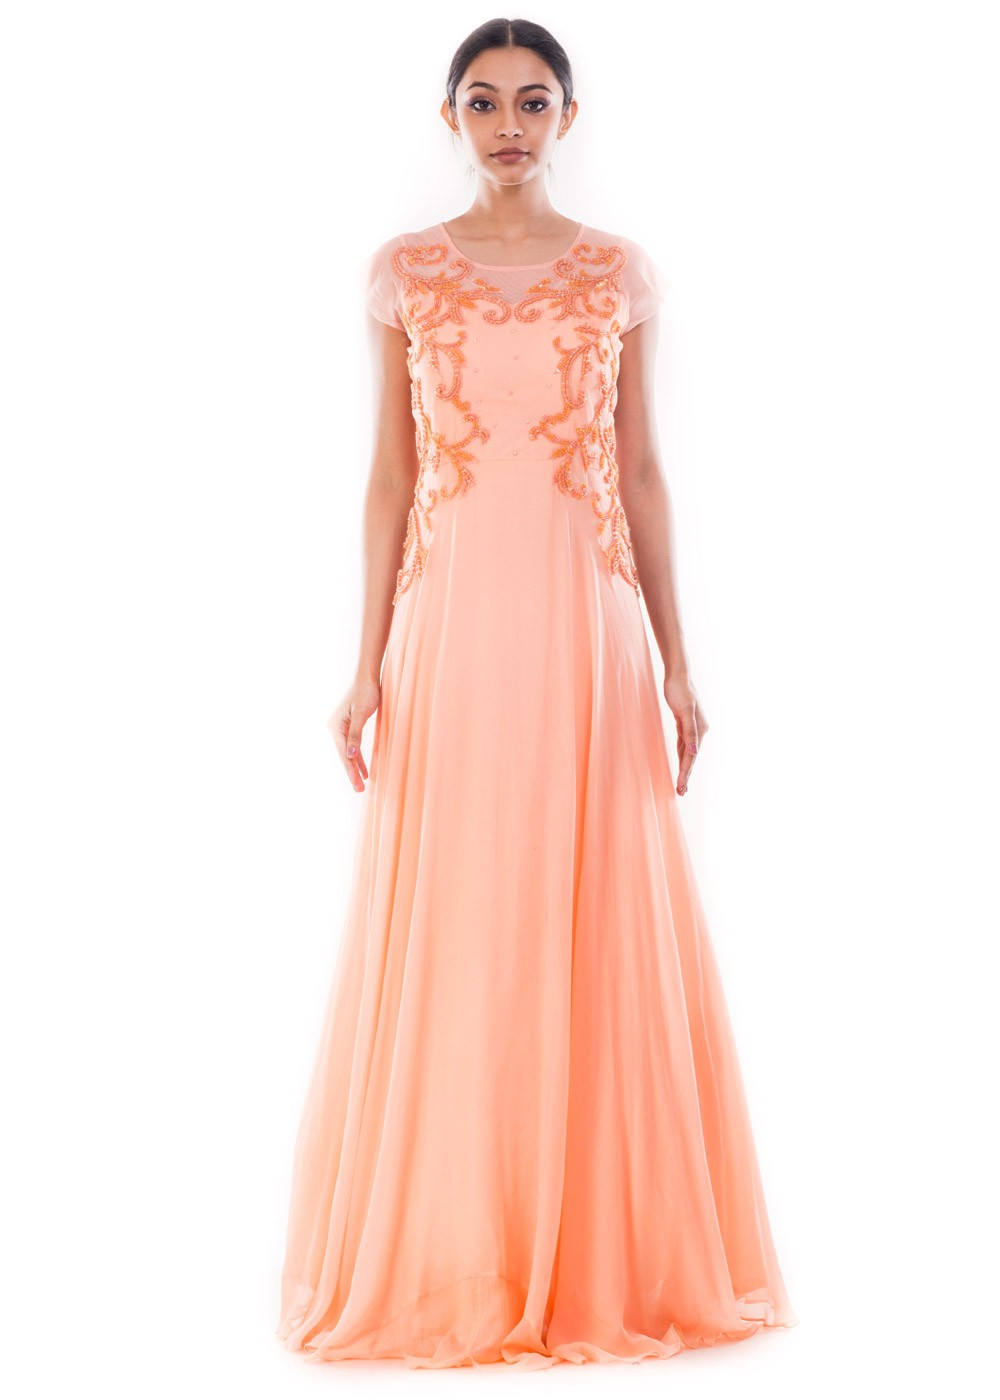 Peach Chiffon & Net Full Length Readymade Gown Designer Couture 168GW19